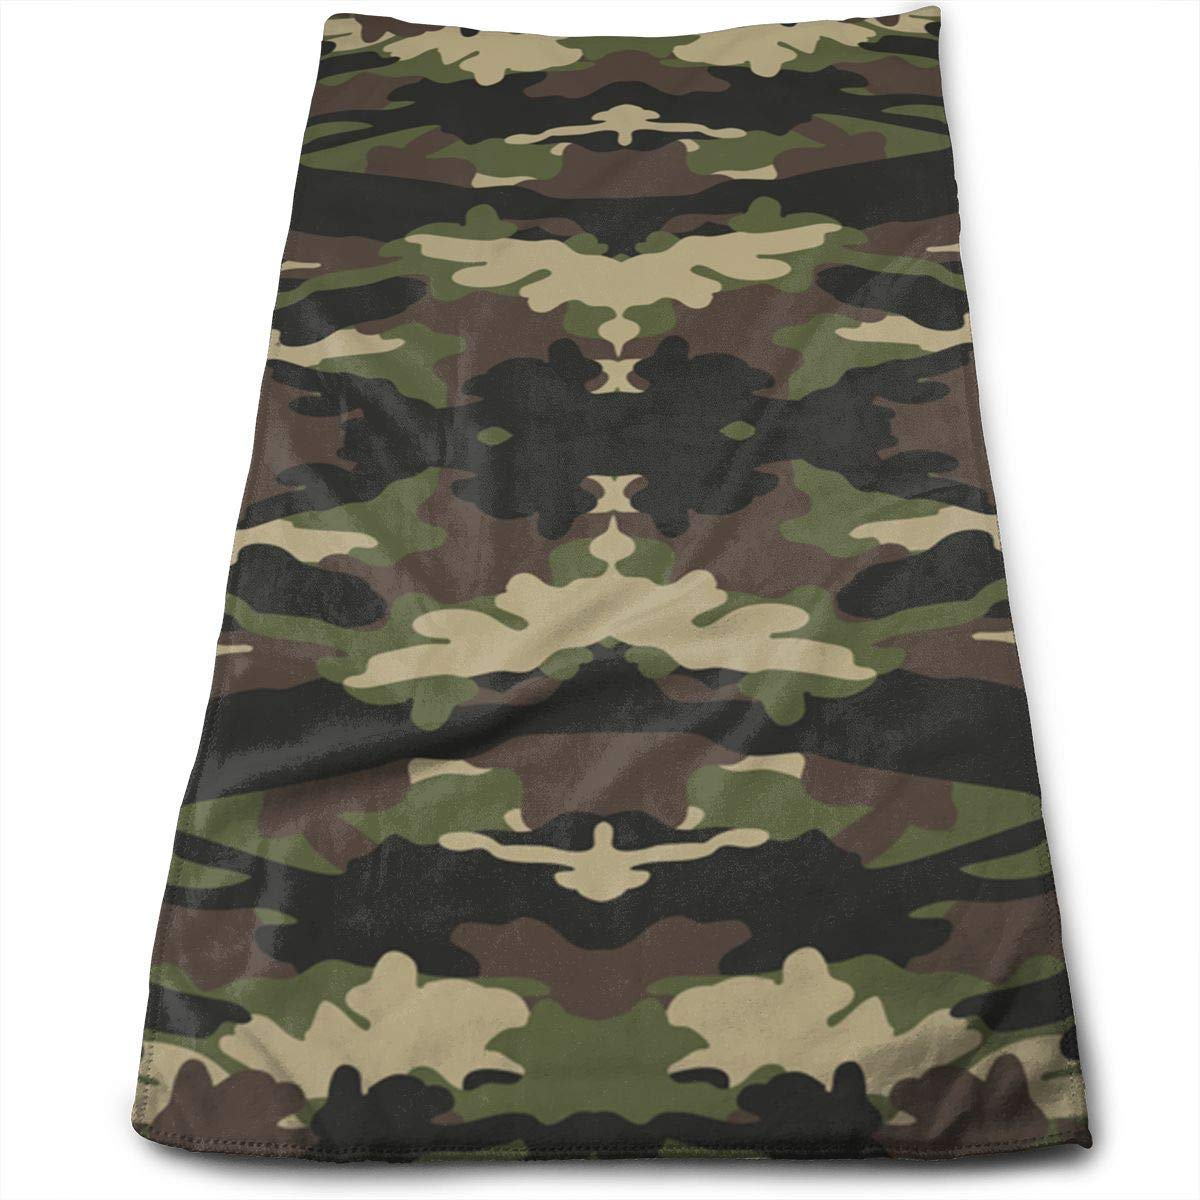 Osmykqe Camouflage Cotton Bath Towels for Hotel-Spa-Pool-Gym-Bathroom Super Soft Absorbent Ringspun Towels